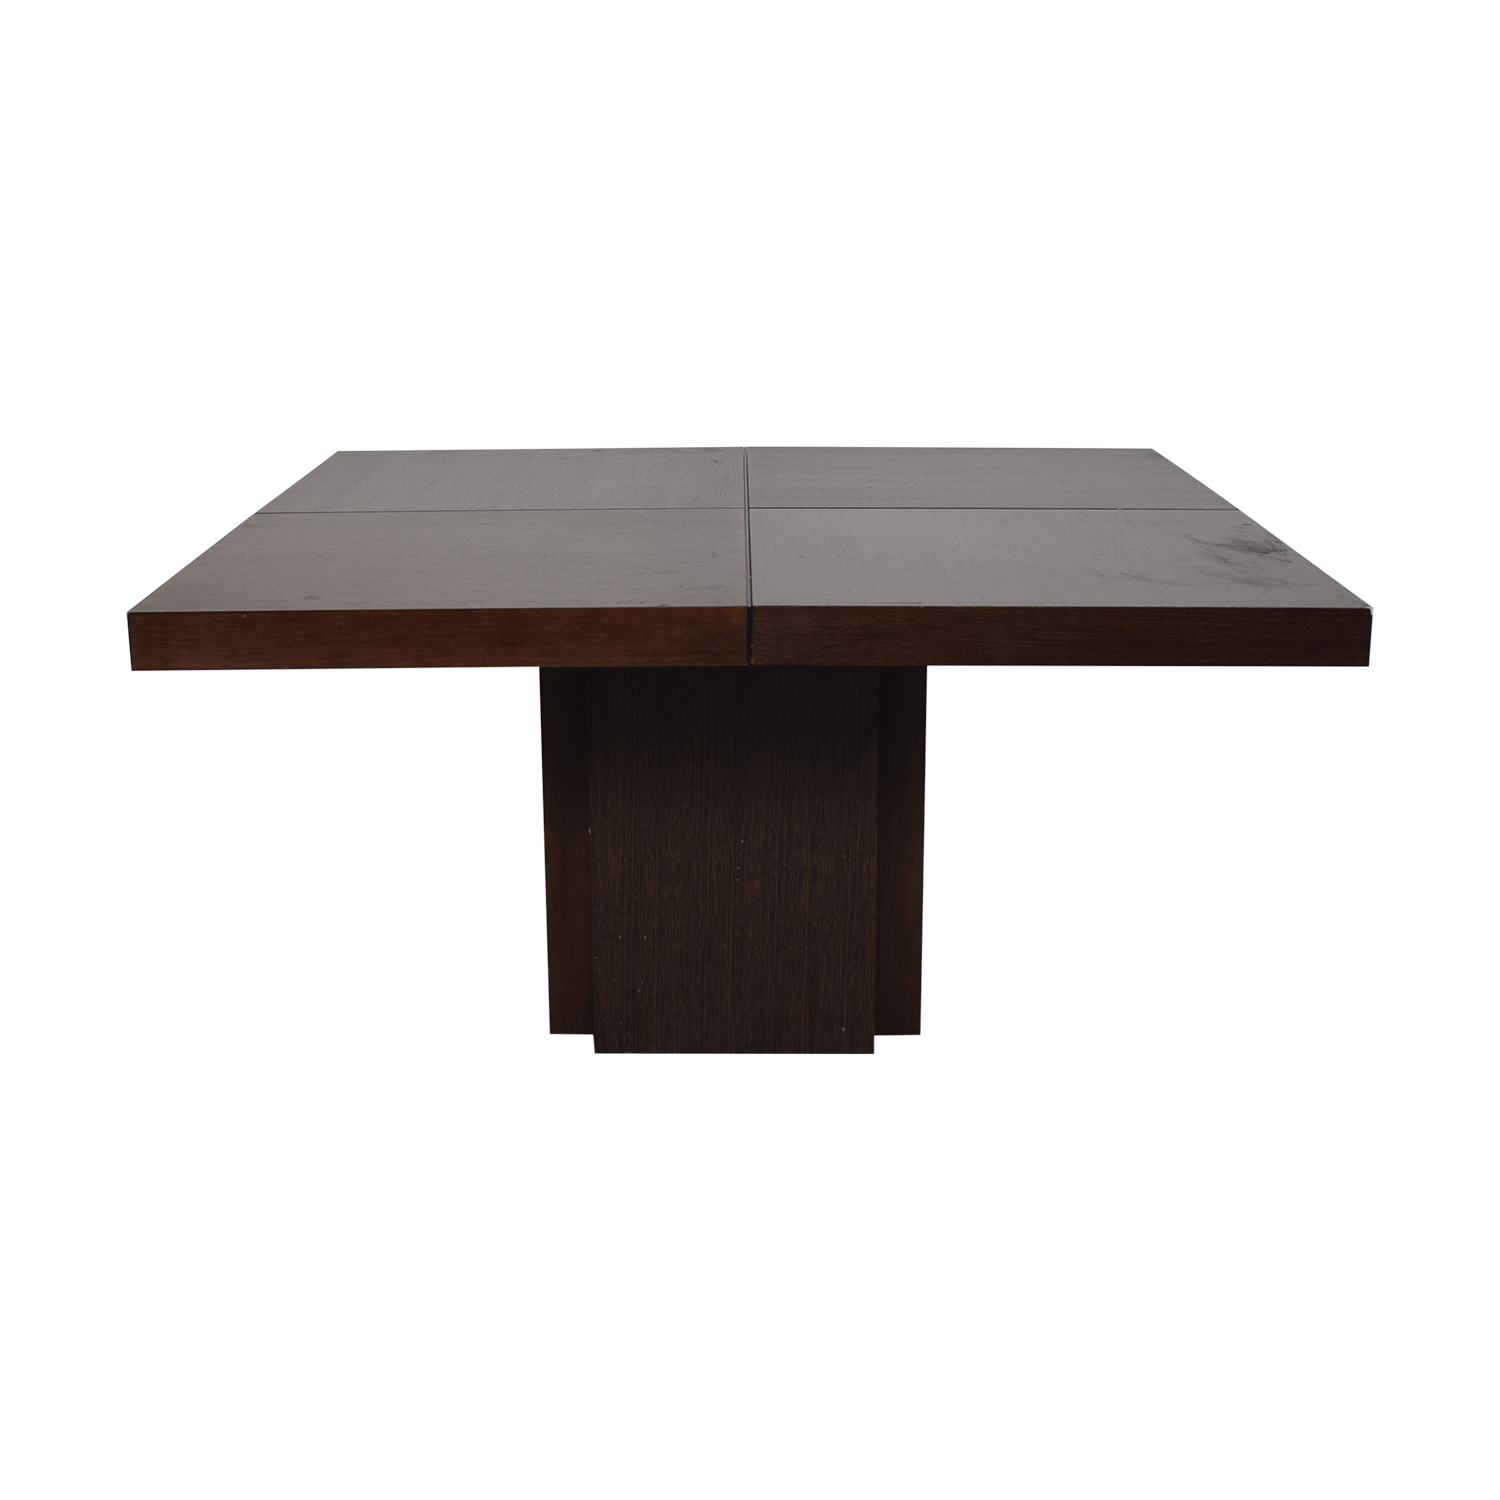 Tema Tema Dusk Dining Table used